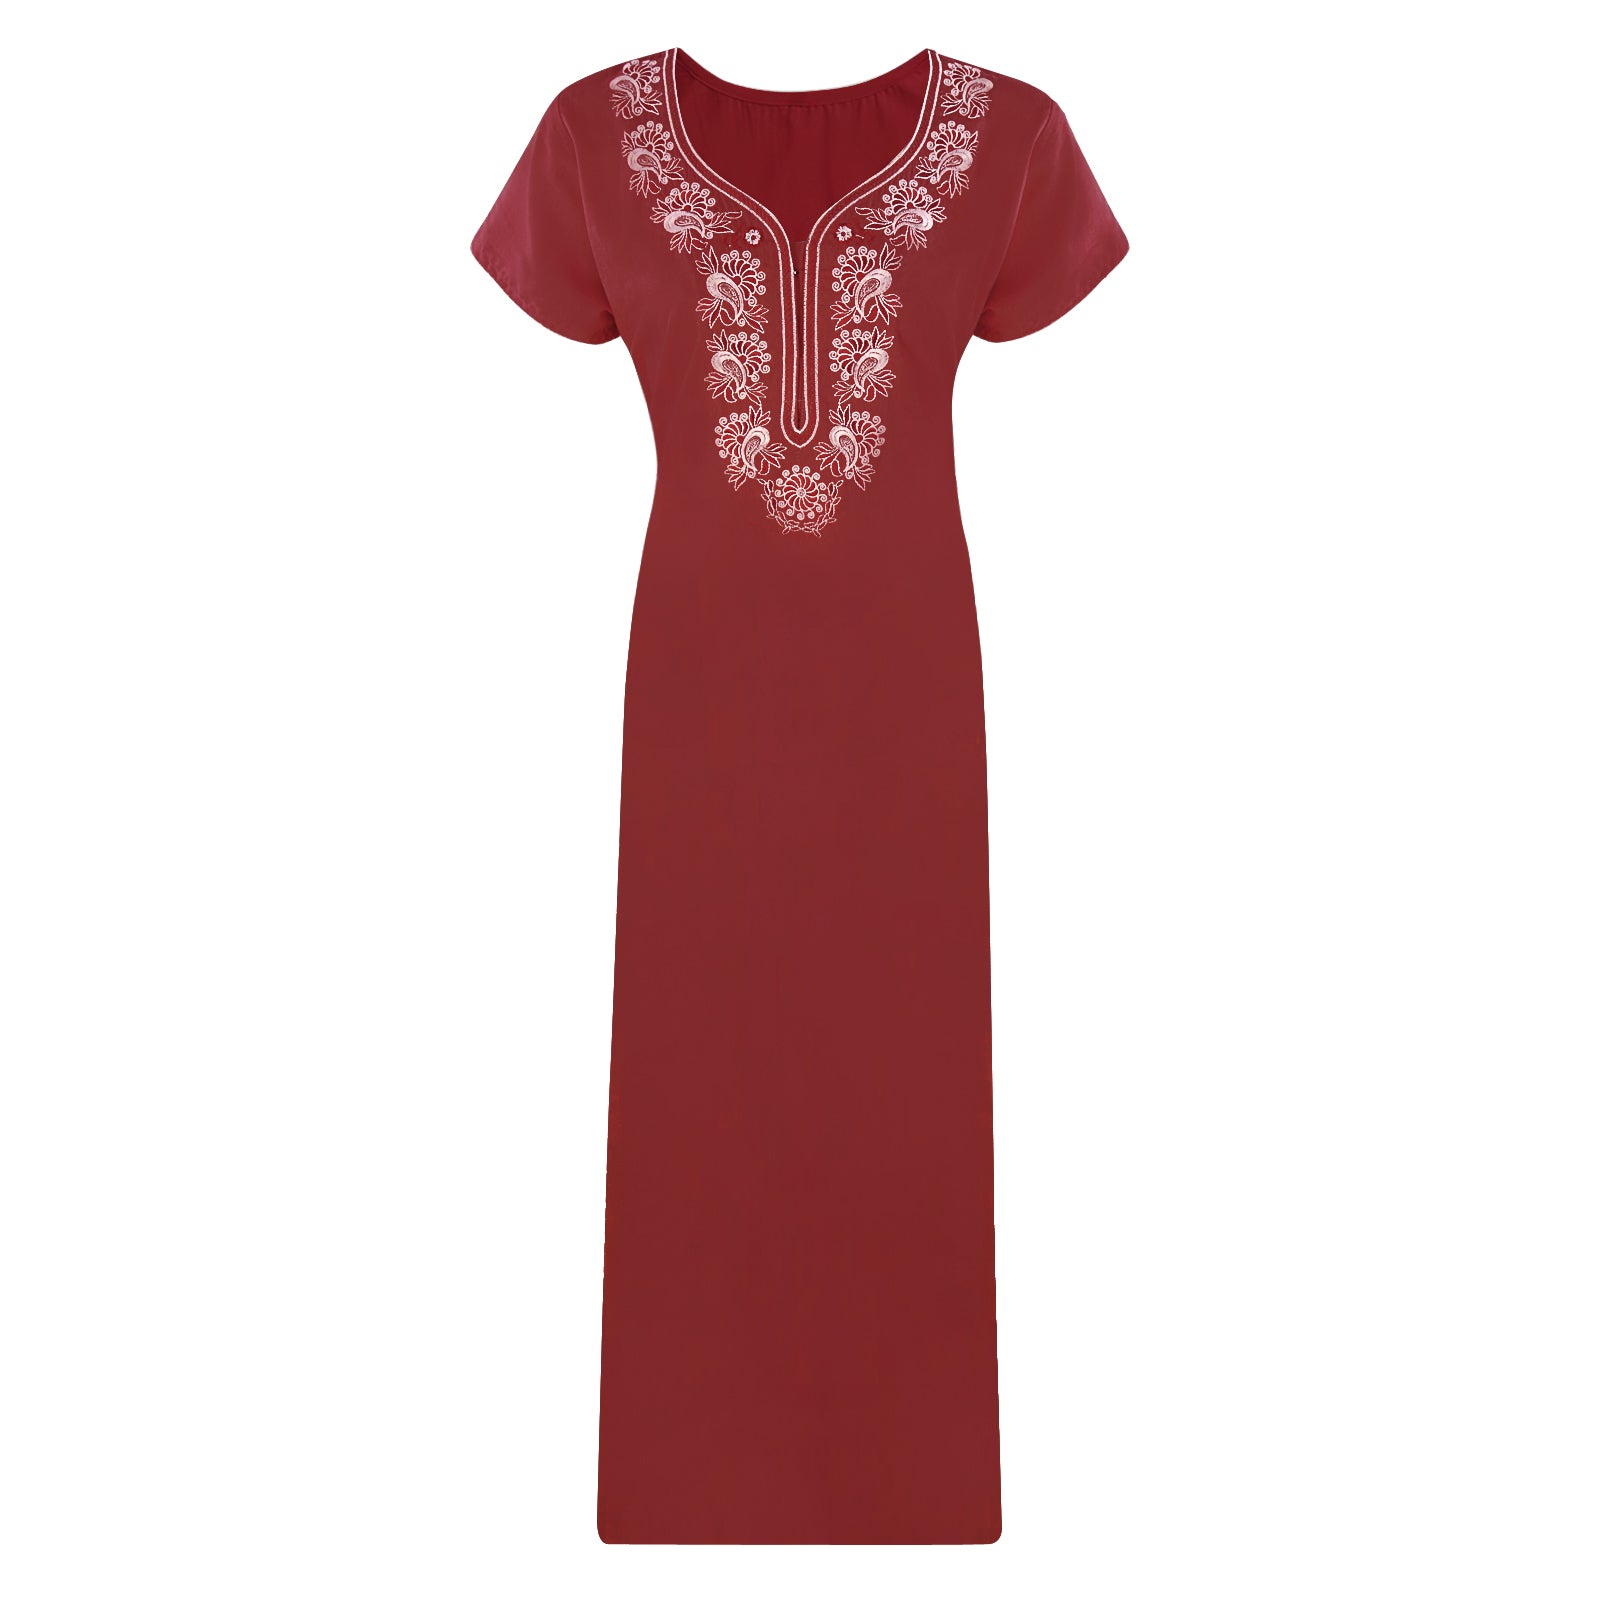 Cotton Rich Embroidery Nightdress [colour]- Hautie UK, #Nightfashion | #Underfashion